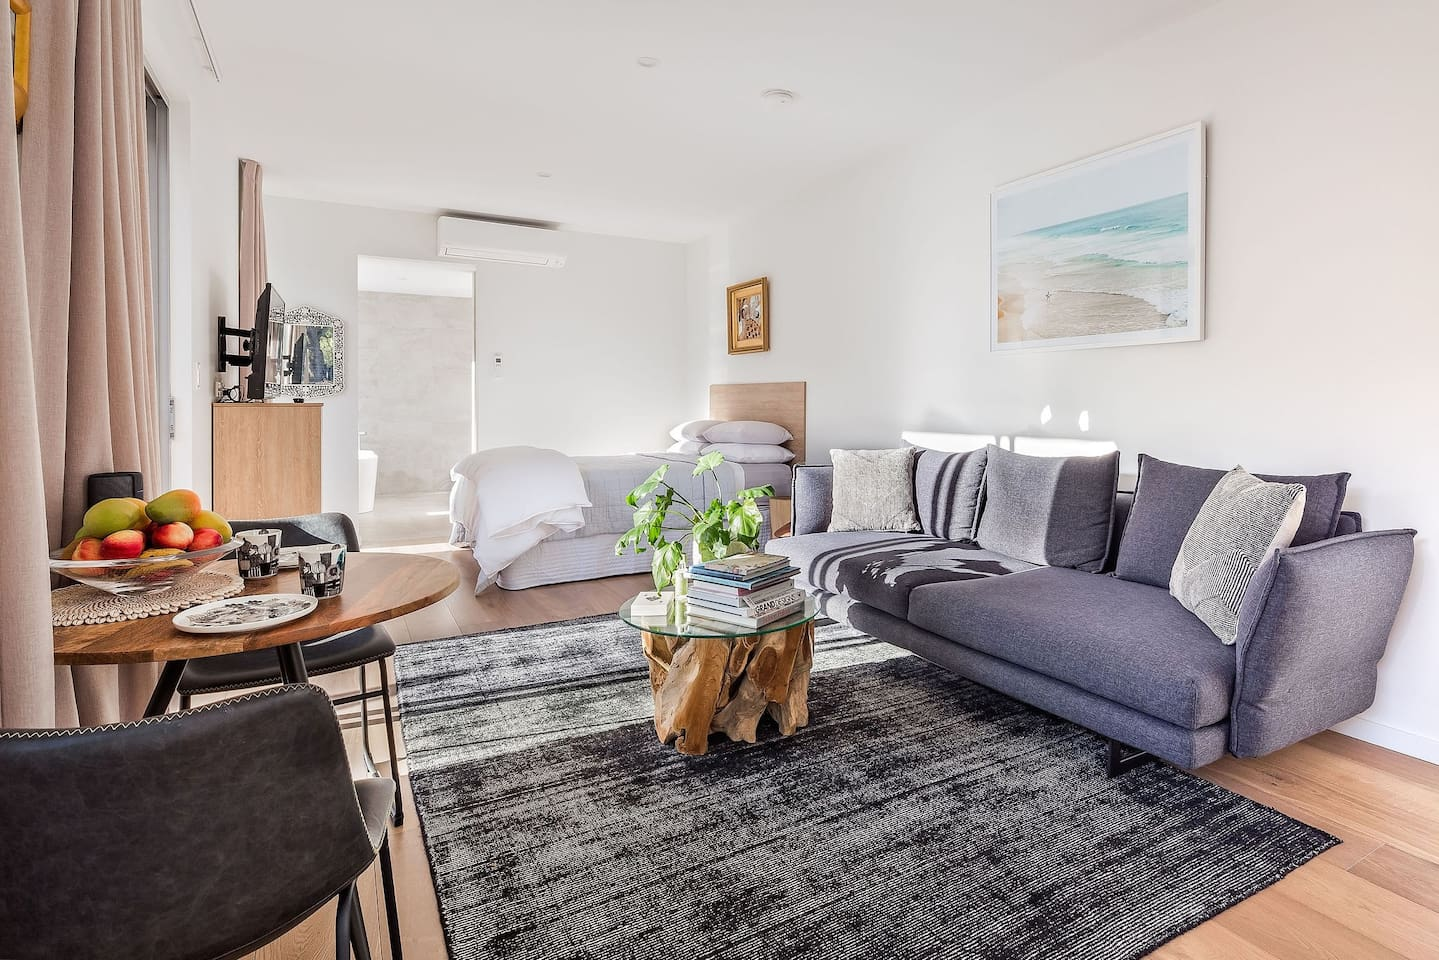 Beautiful brand new Villa Amare.  Perfect for a weekend getaway.  Stunning couples retreat set on a bush block in Yallingup with sweeping views over Mt Duckworth and  distant views of the magnificent Yallingup beach.   Peaceful, tranquil, private.